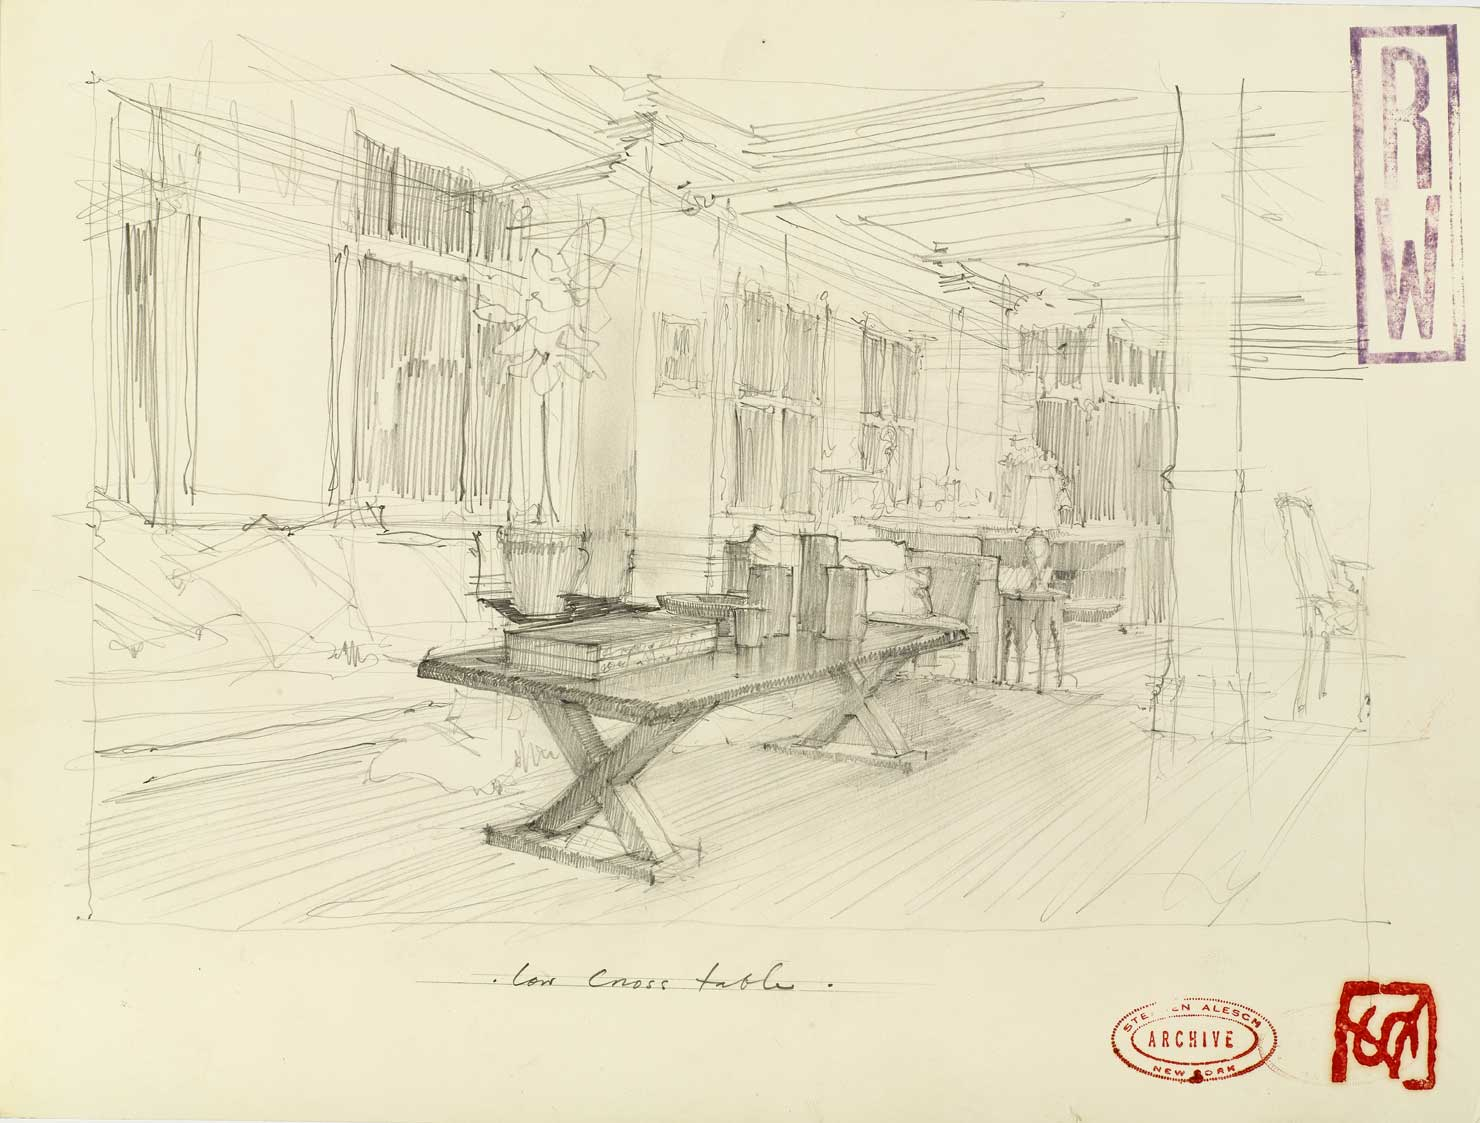 ADDICTED TO LOVE_FILM PRODUCTION DESIGN_PERSPECTIVE SKETCH_DATE_HIRES_JEFF SCHAD (1).jpg